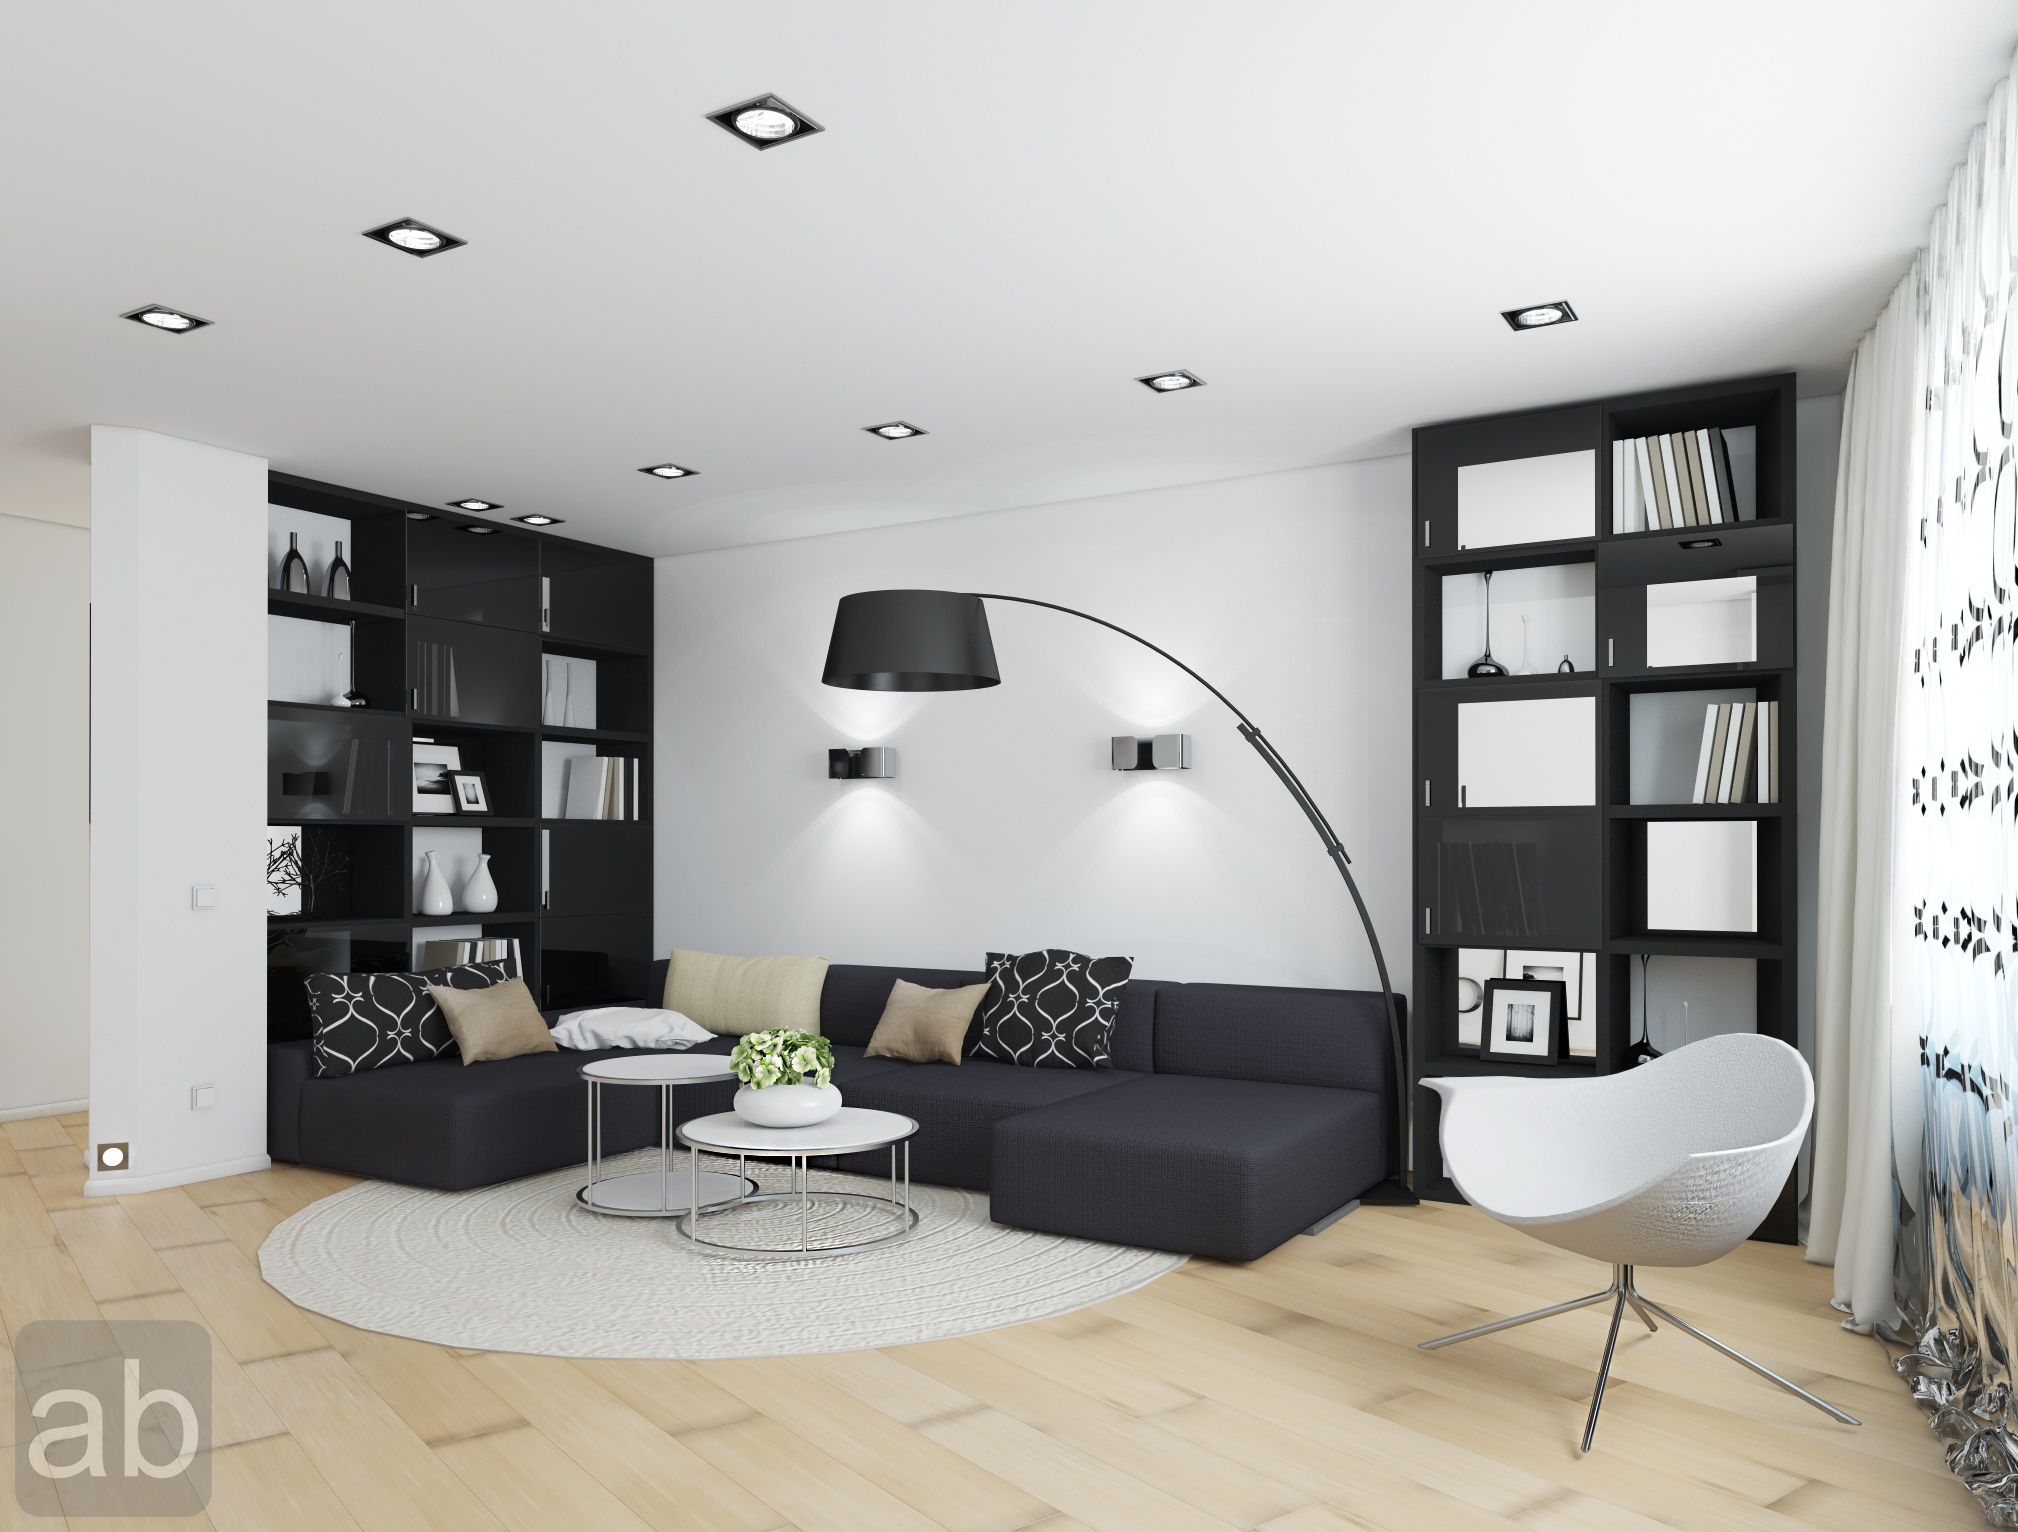 Black and White Room Design Ideas With Modern Furniture | Pinterest ...